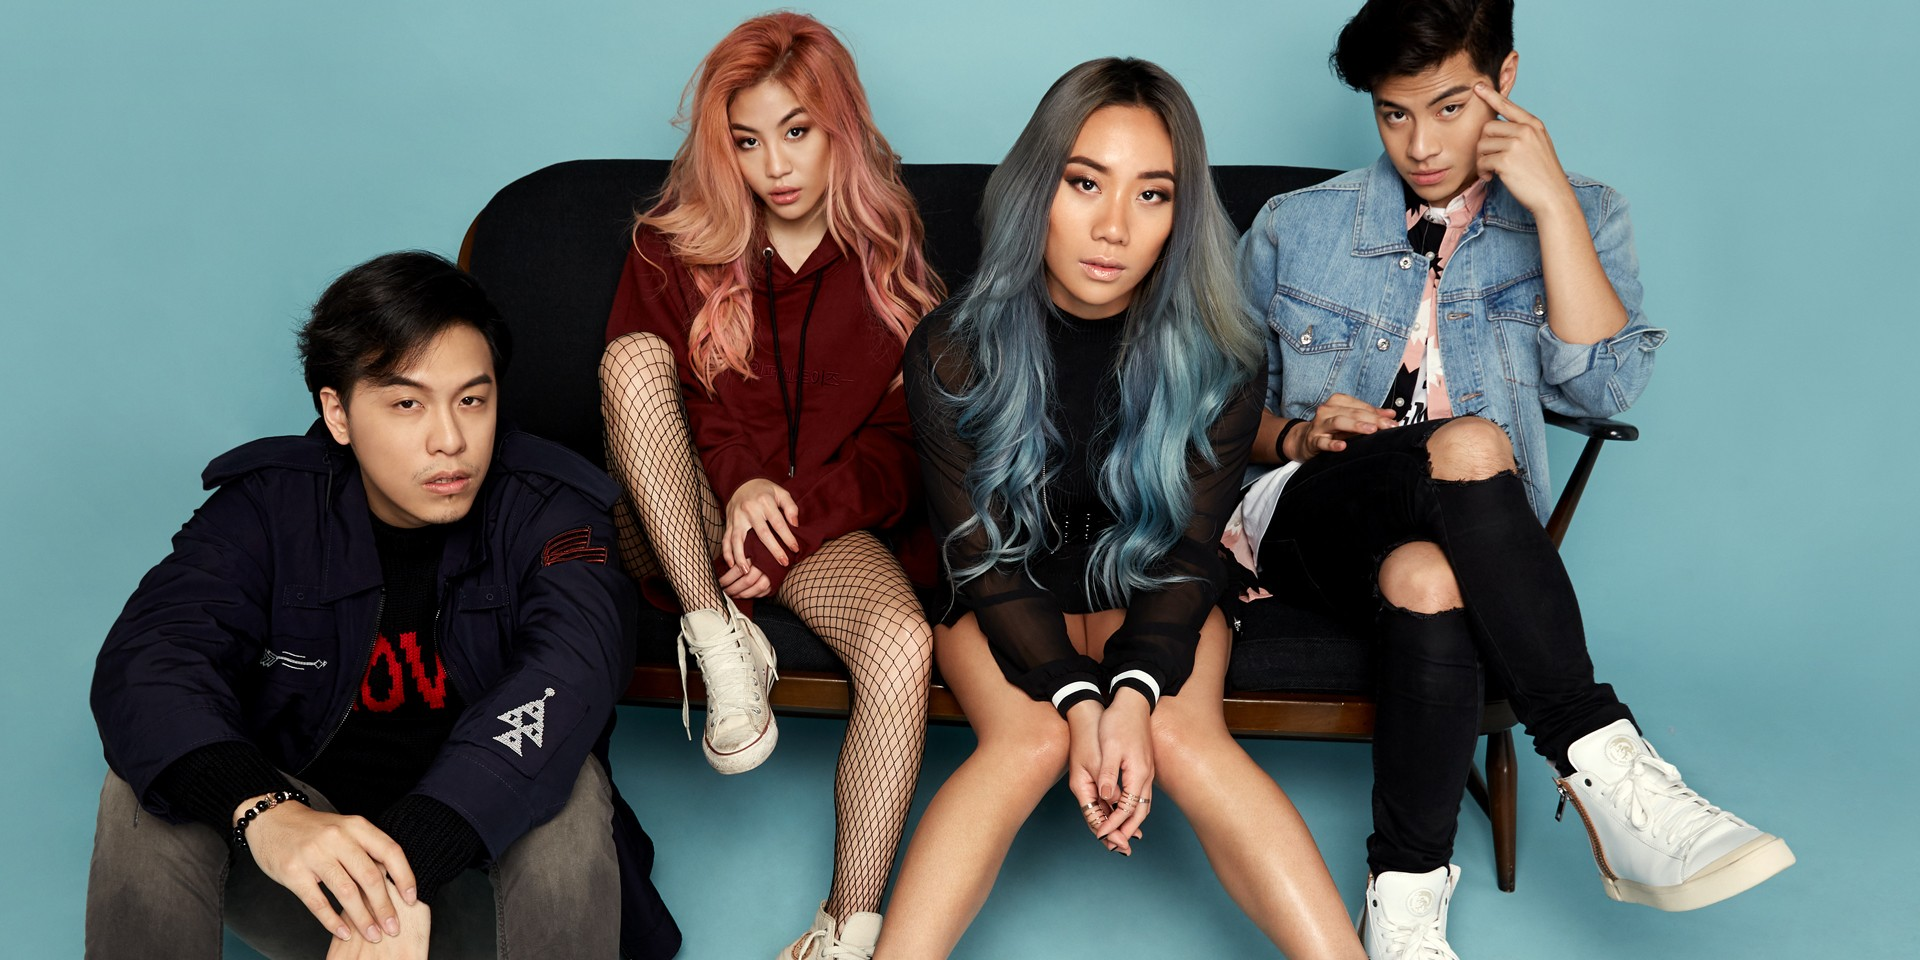 The Sam Willows announce title and release date of long-awaited second album